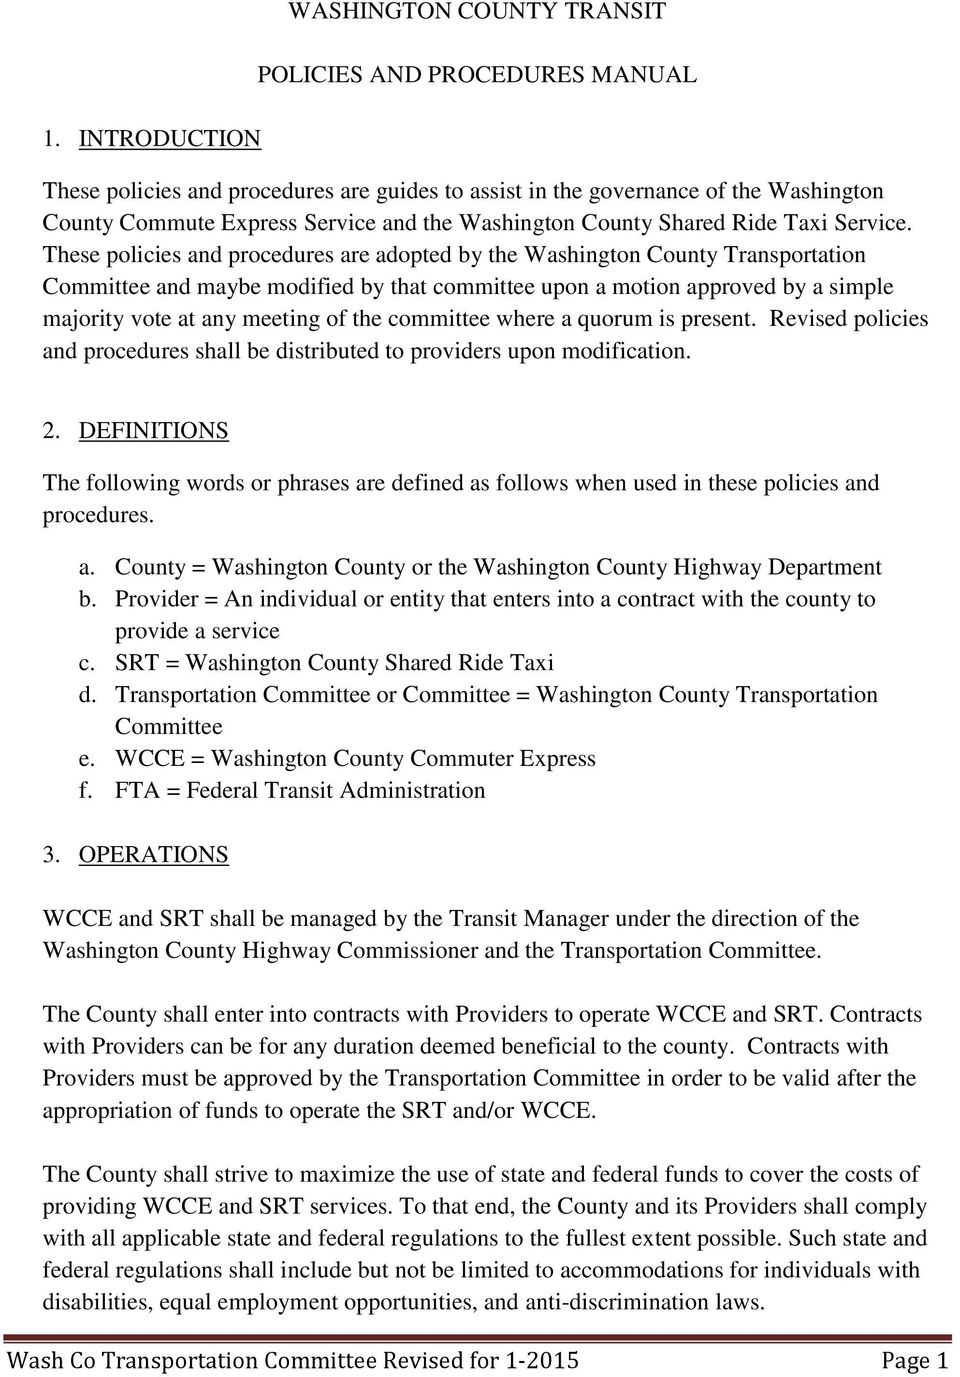 These policies and procedures are adopted by the Washington County Transportation Committee and maybe modified by that committee upon a motion approved by a simple majority vote at any meeting of the